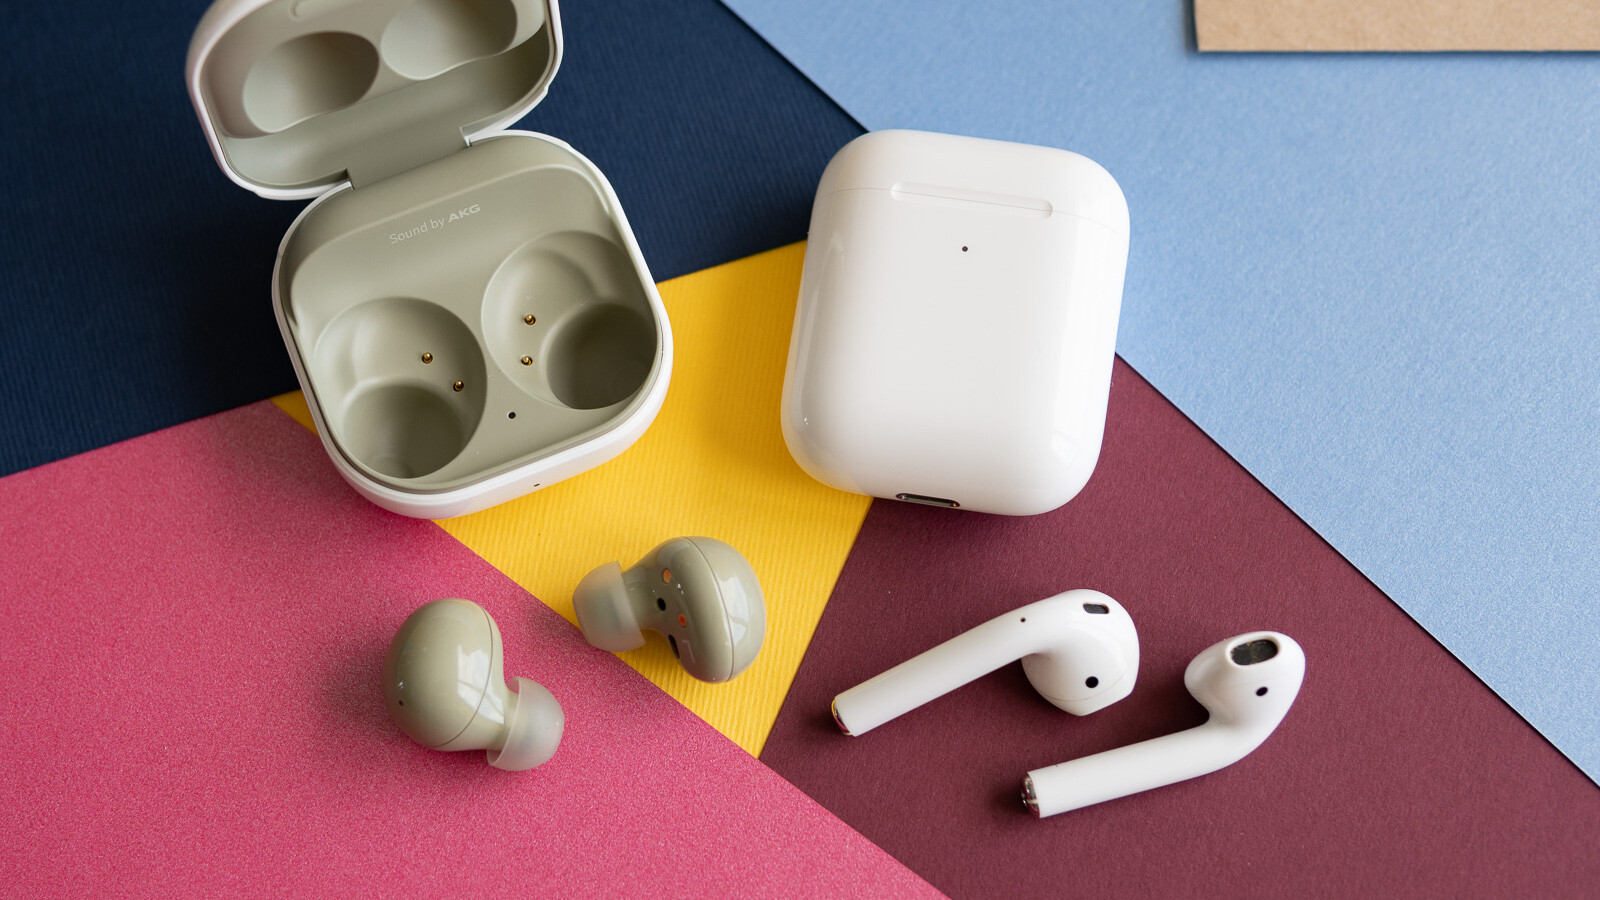 Samsung Galaxy Buds 2 vs Apple AirPods – there's a clear winner